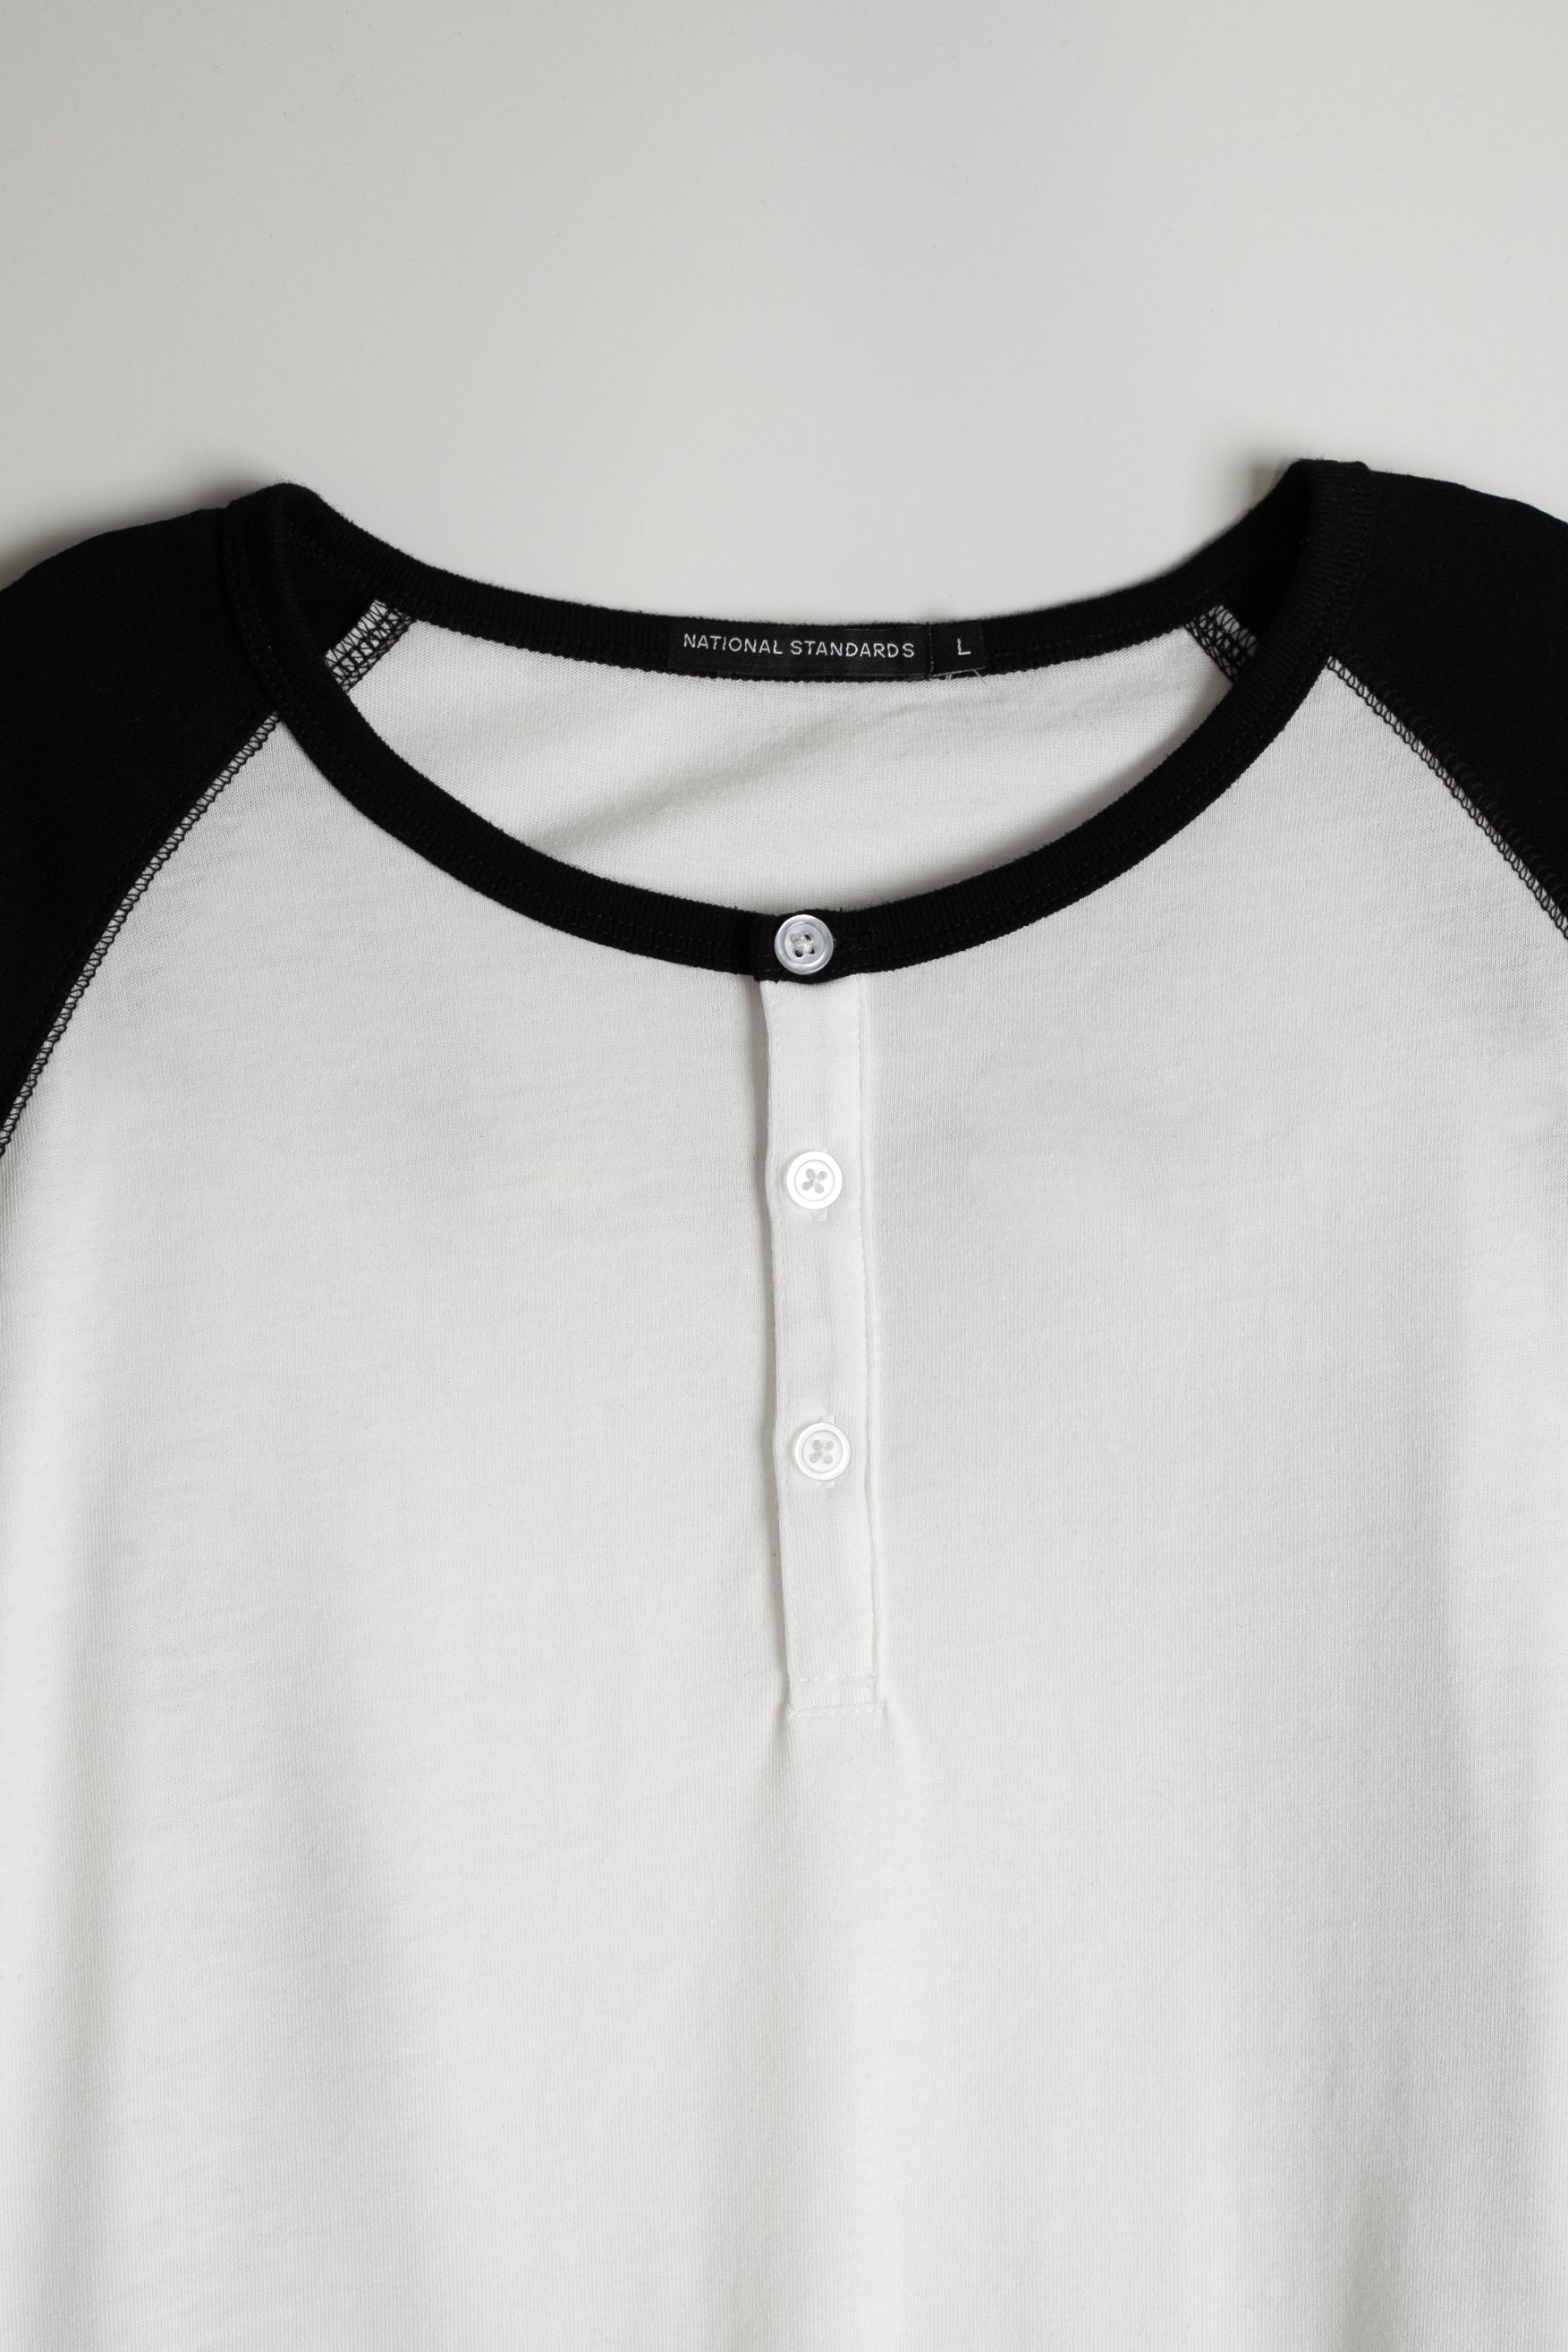 Tri-blend 3/4 henley in White and Black 06